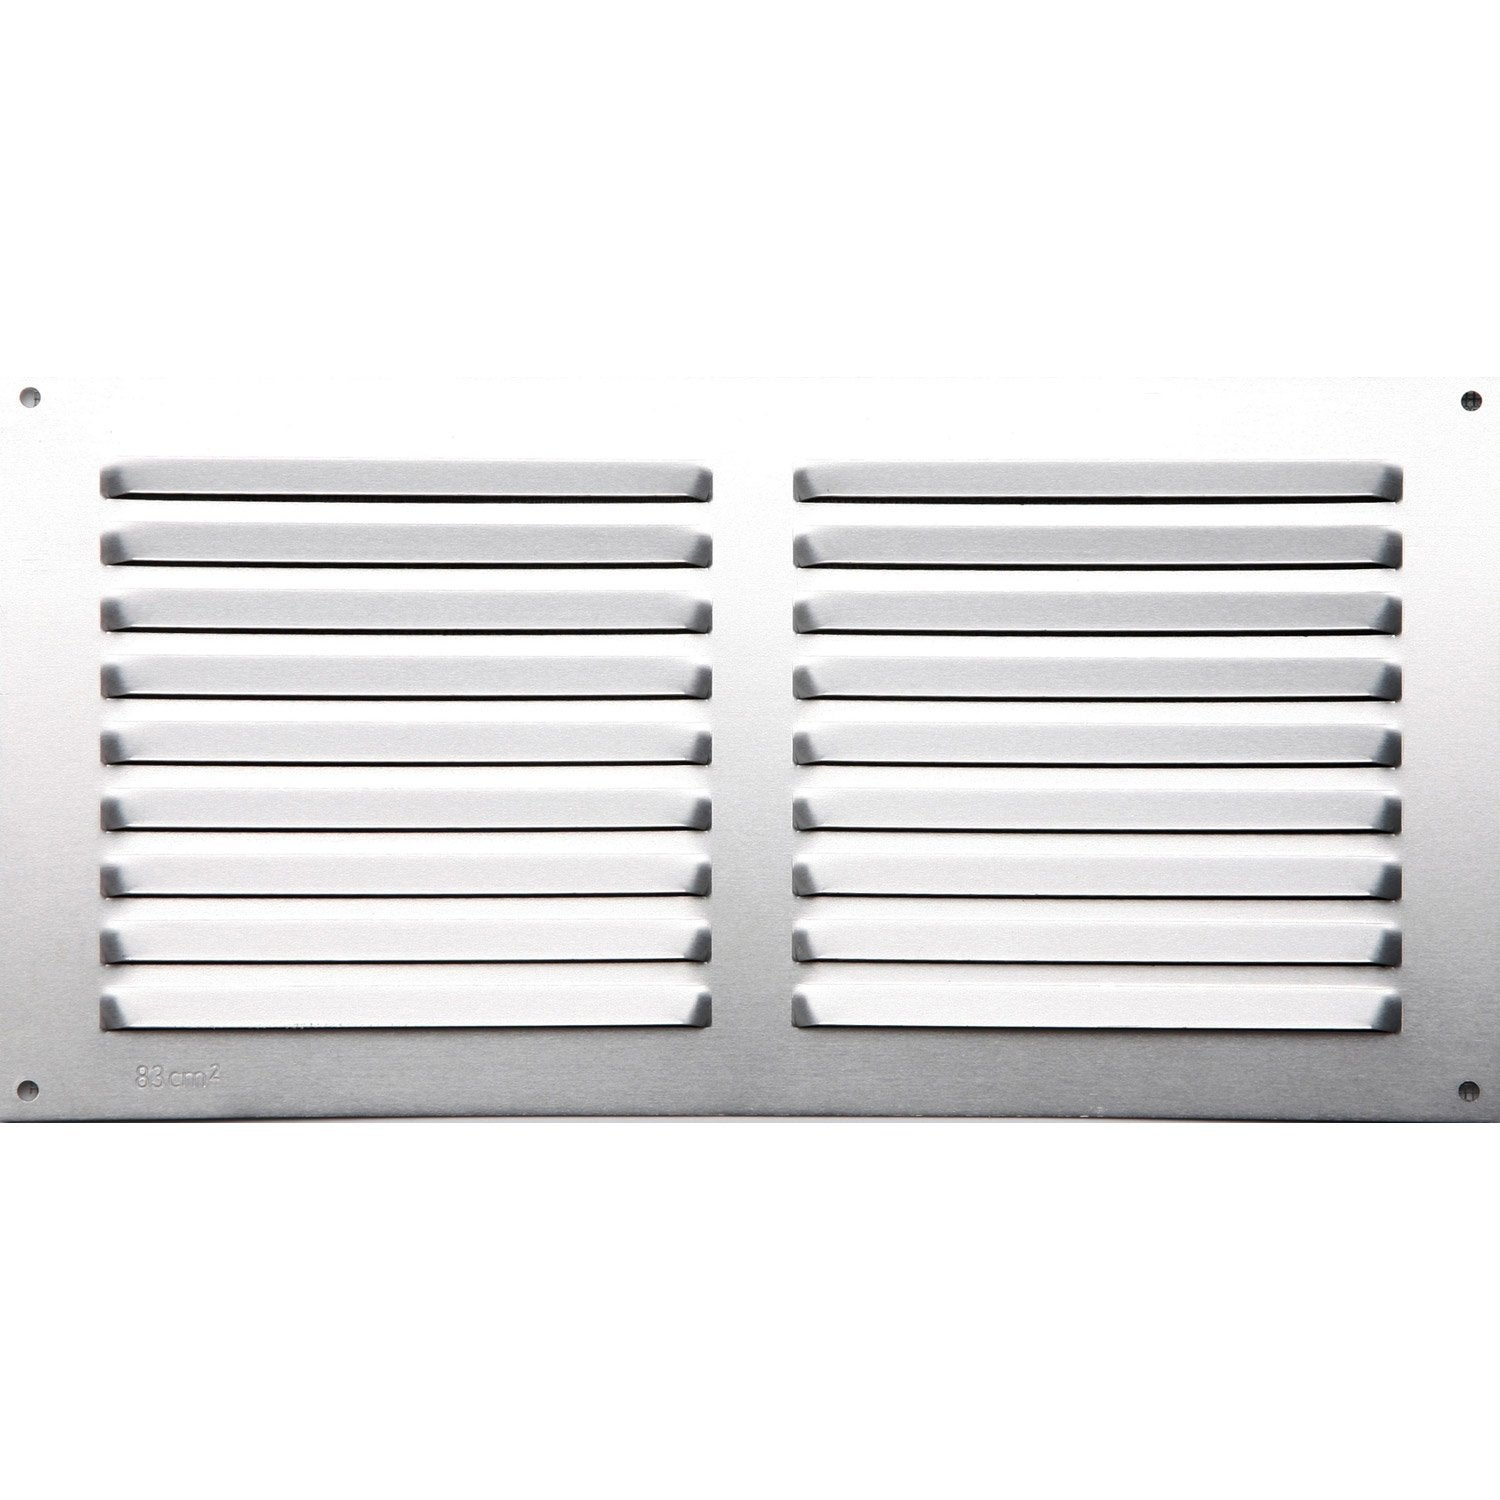 Grille cache radiateur leroy merlin fashion designs - Grille de defense leroy merlin ...